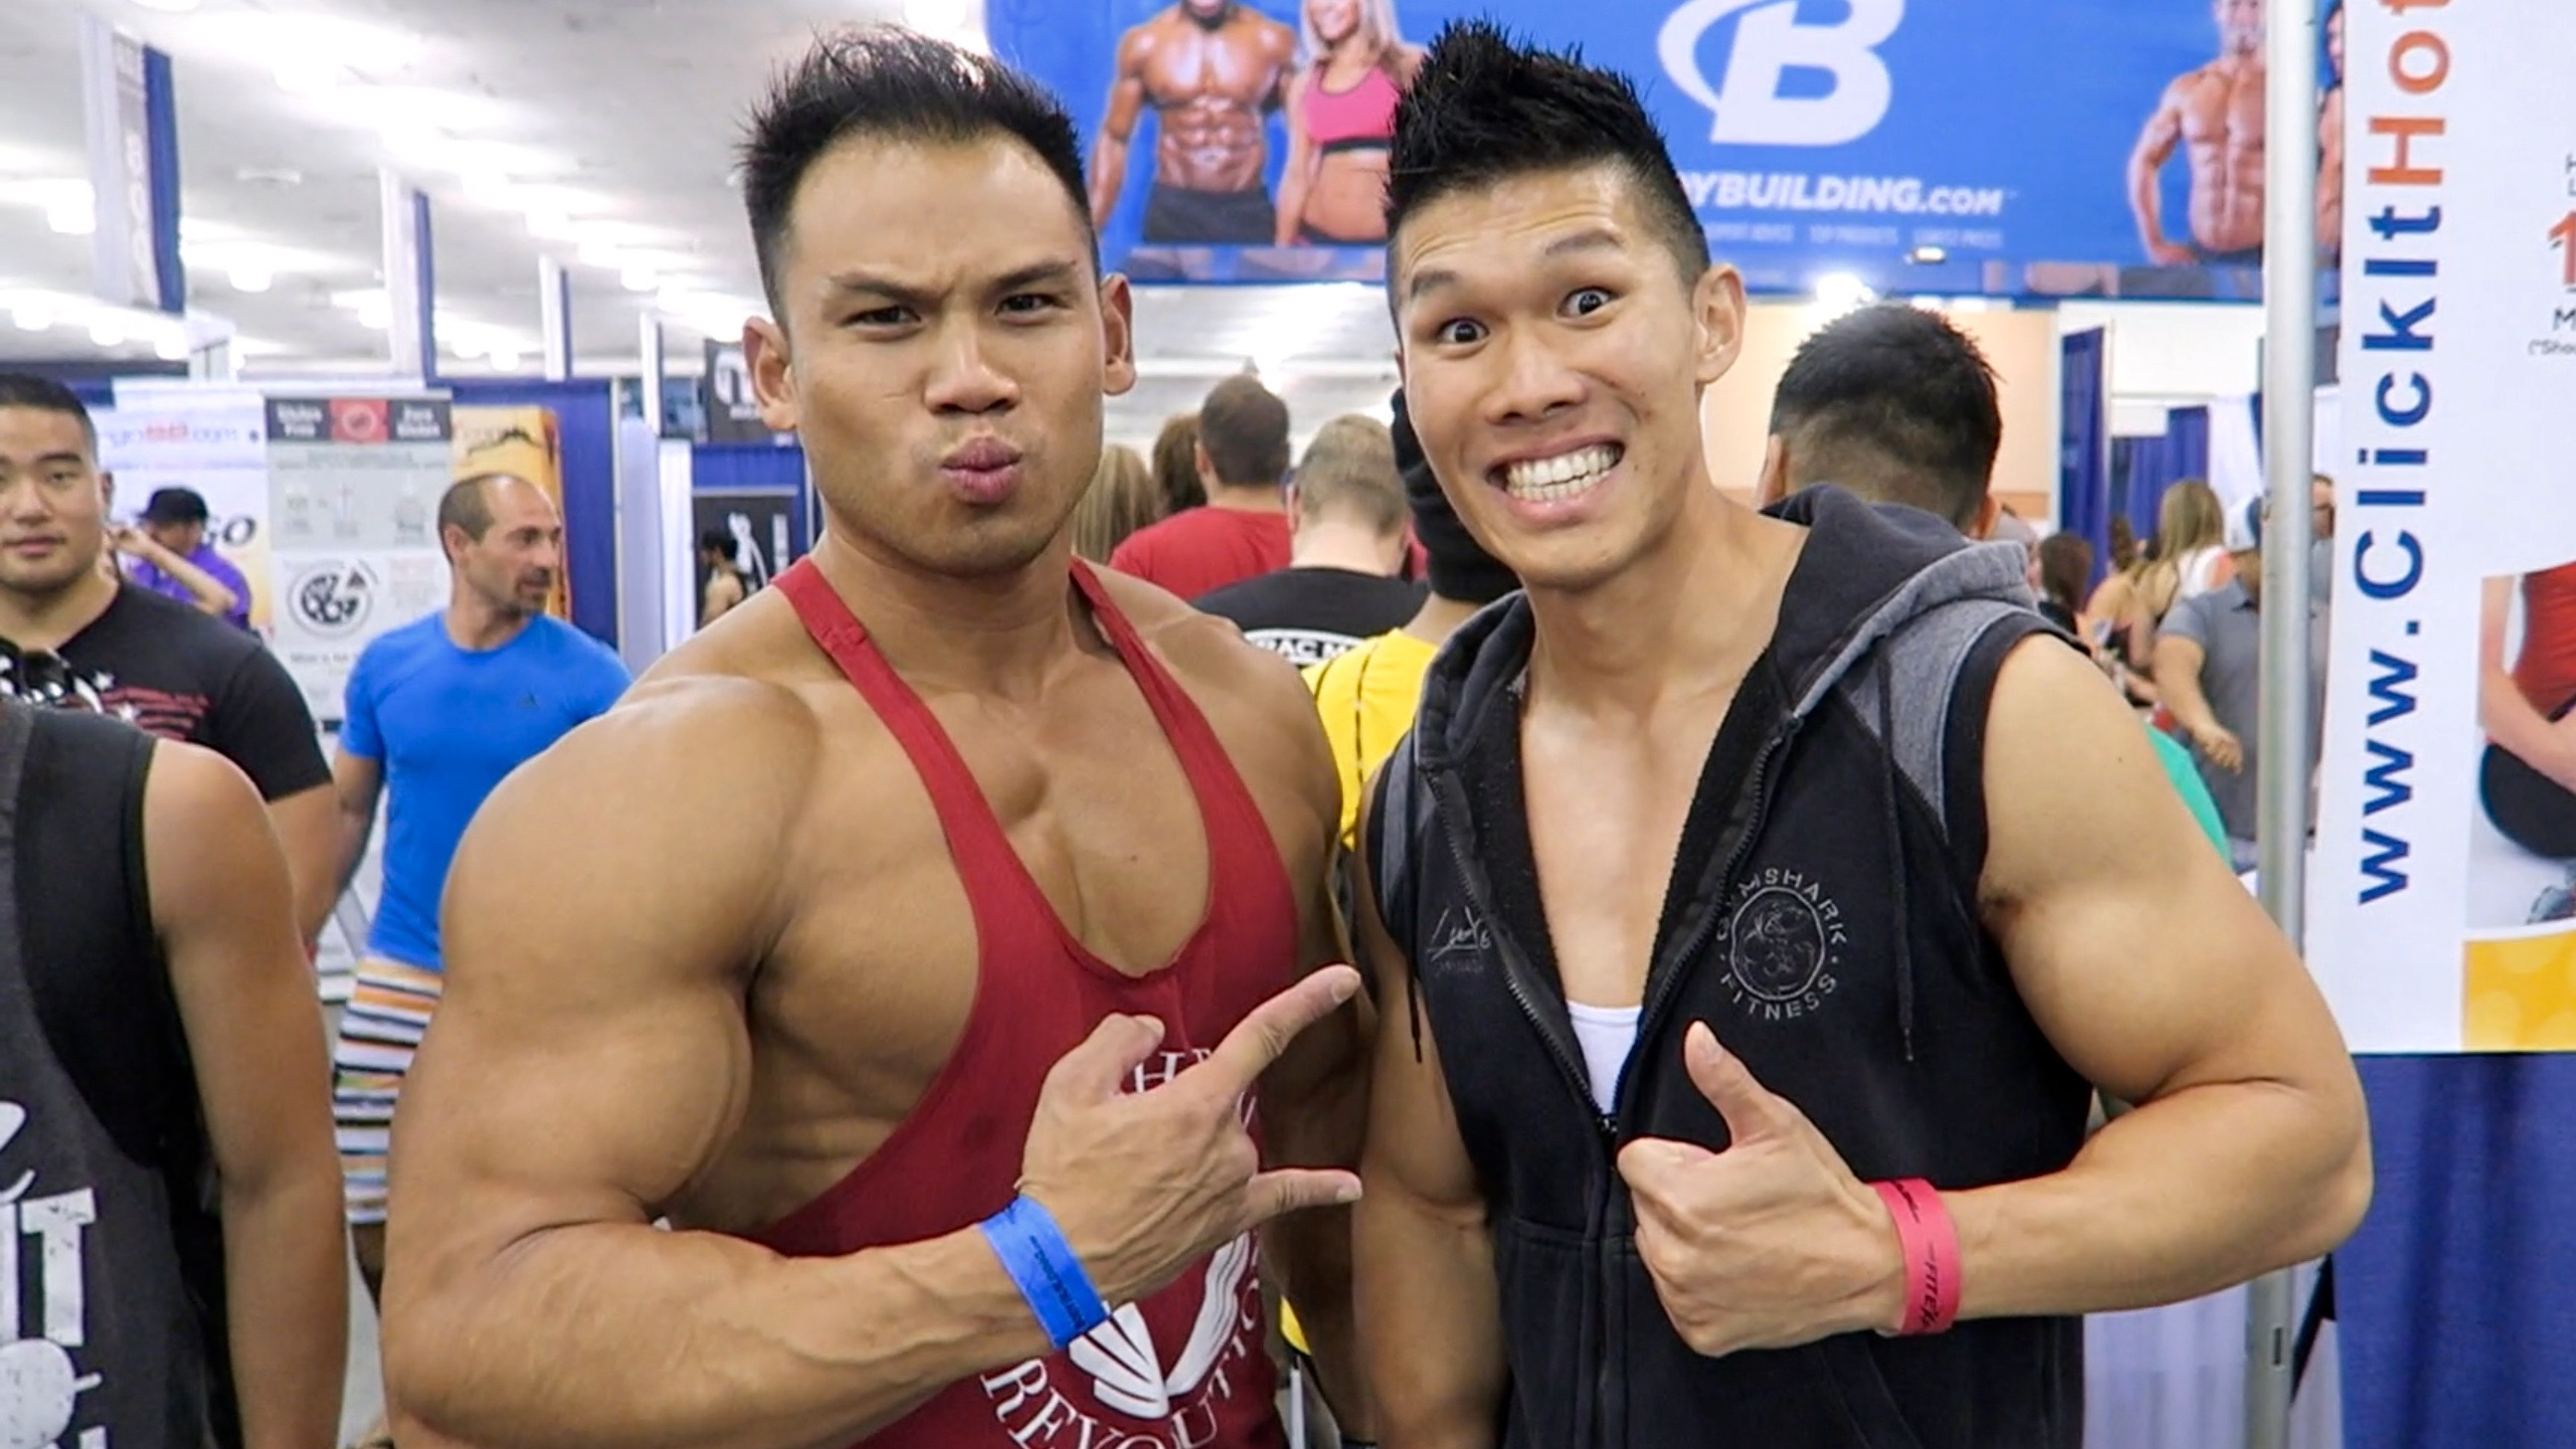 San Jose Fit Expo